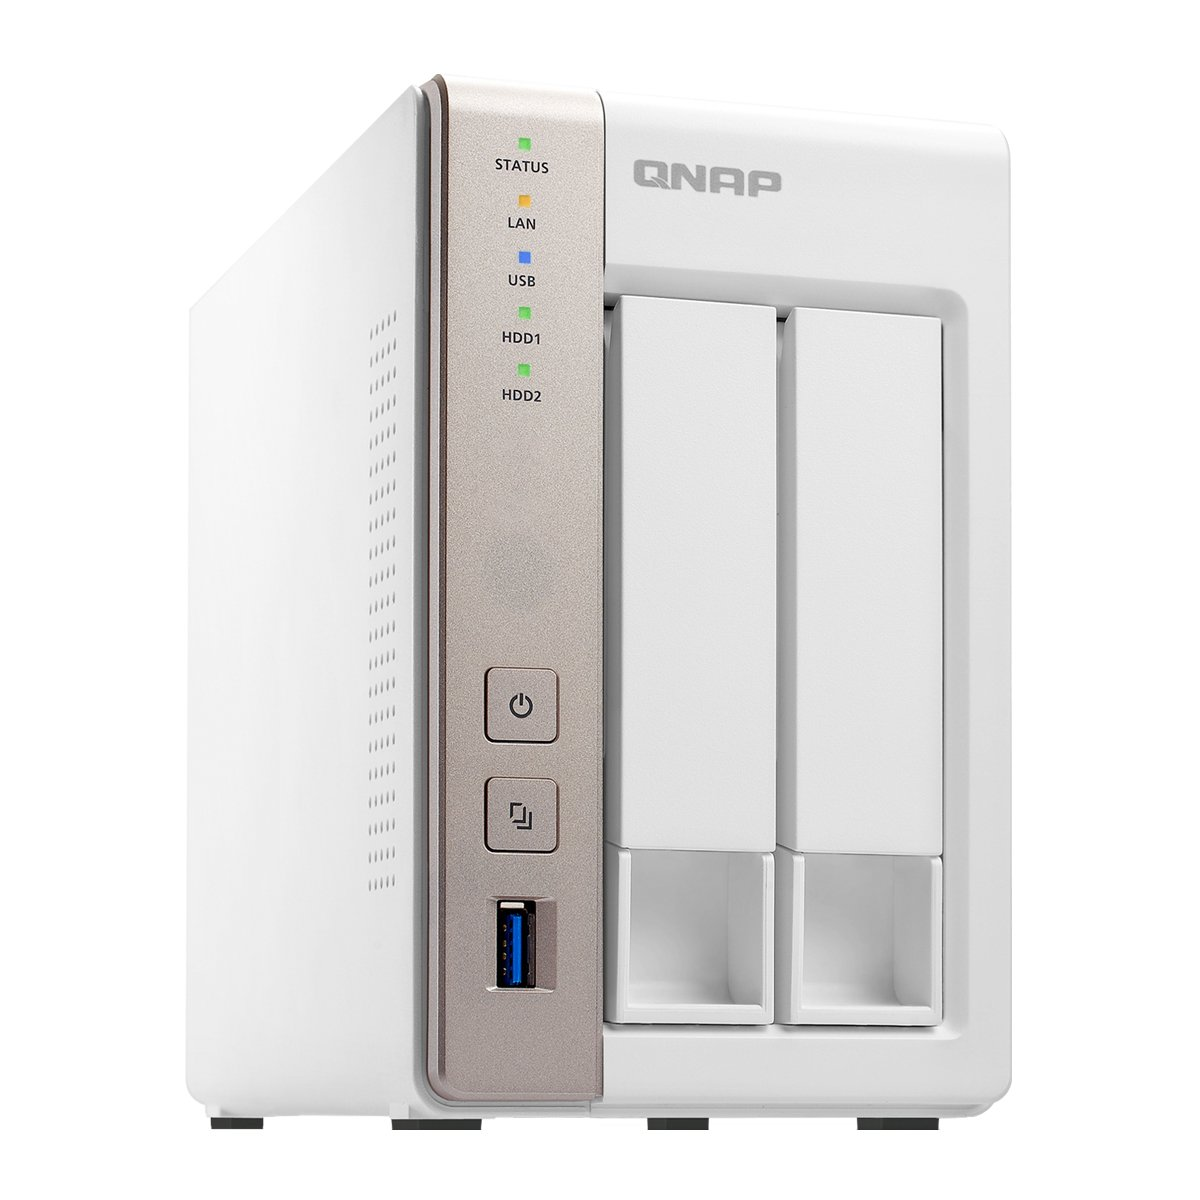 QNAP TS-251 2-Bay Personal Cloud NAS, Intel 2 41GHz Dual Core CPU with  Media Transcoding (TS-251-US)